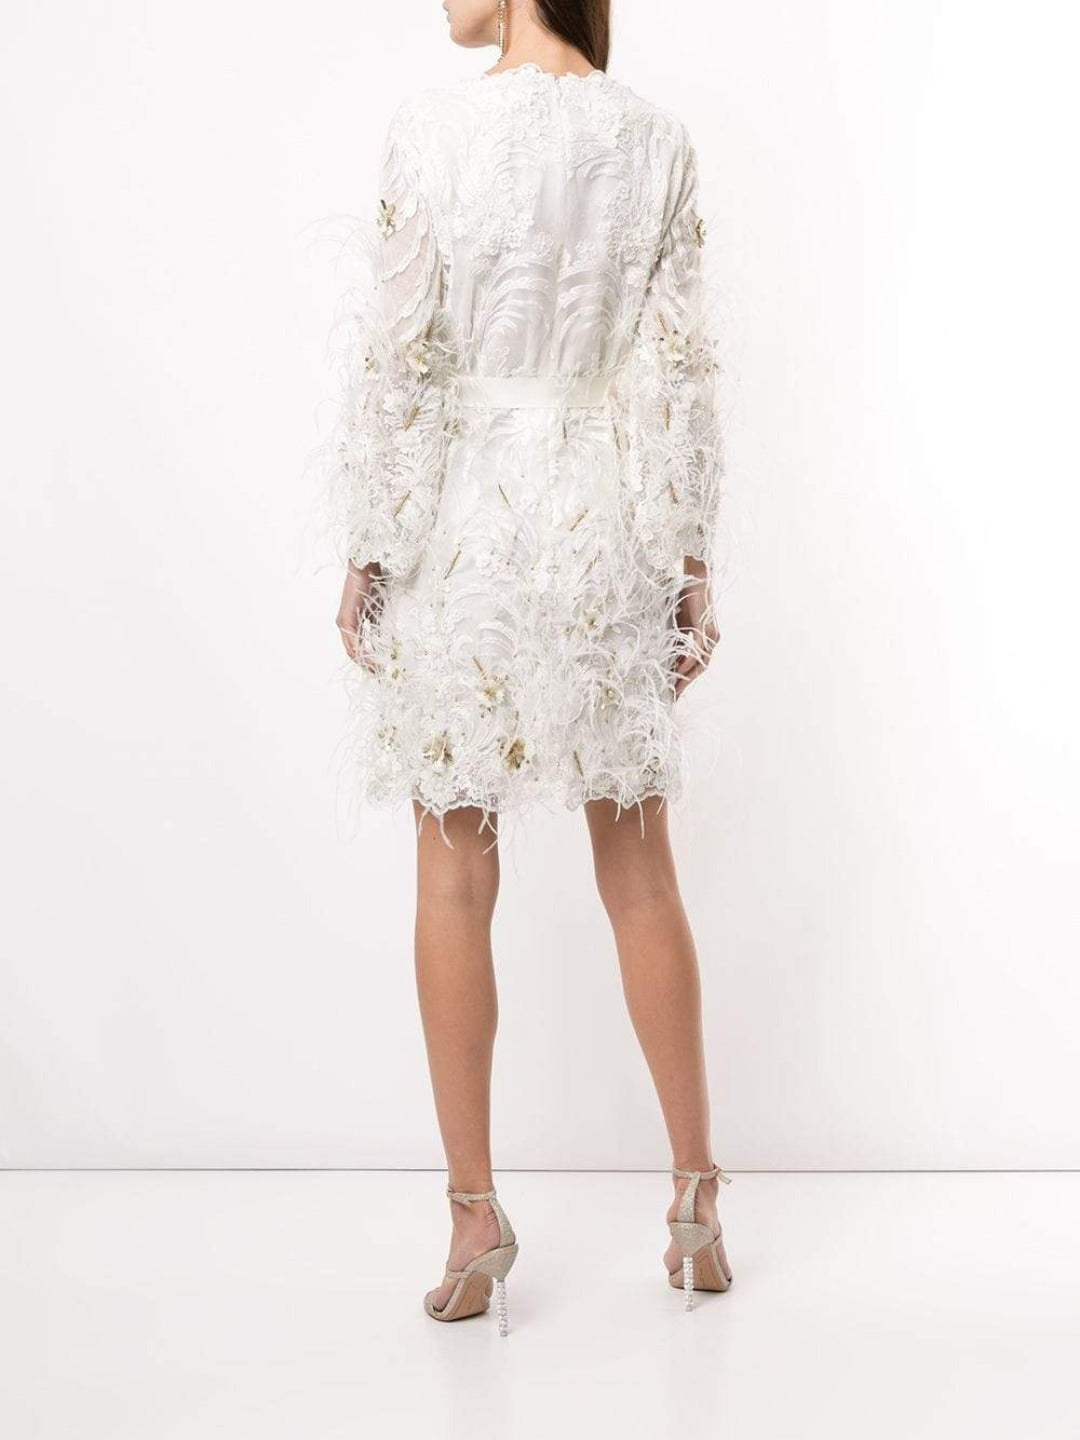 Feather Embellished Lace Dress